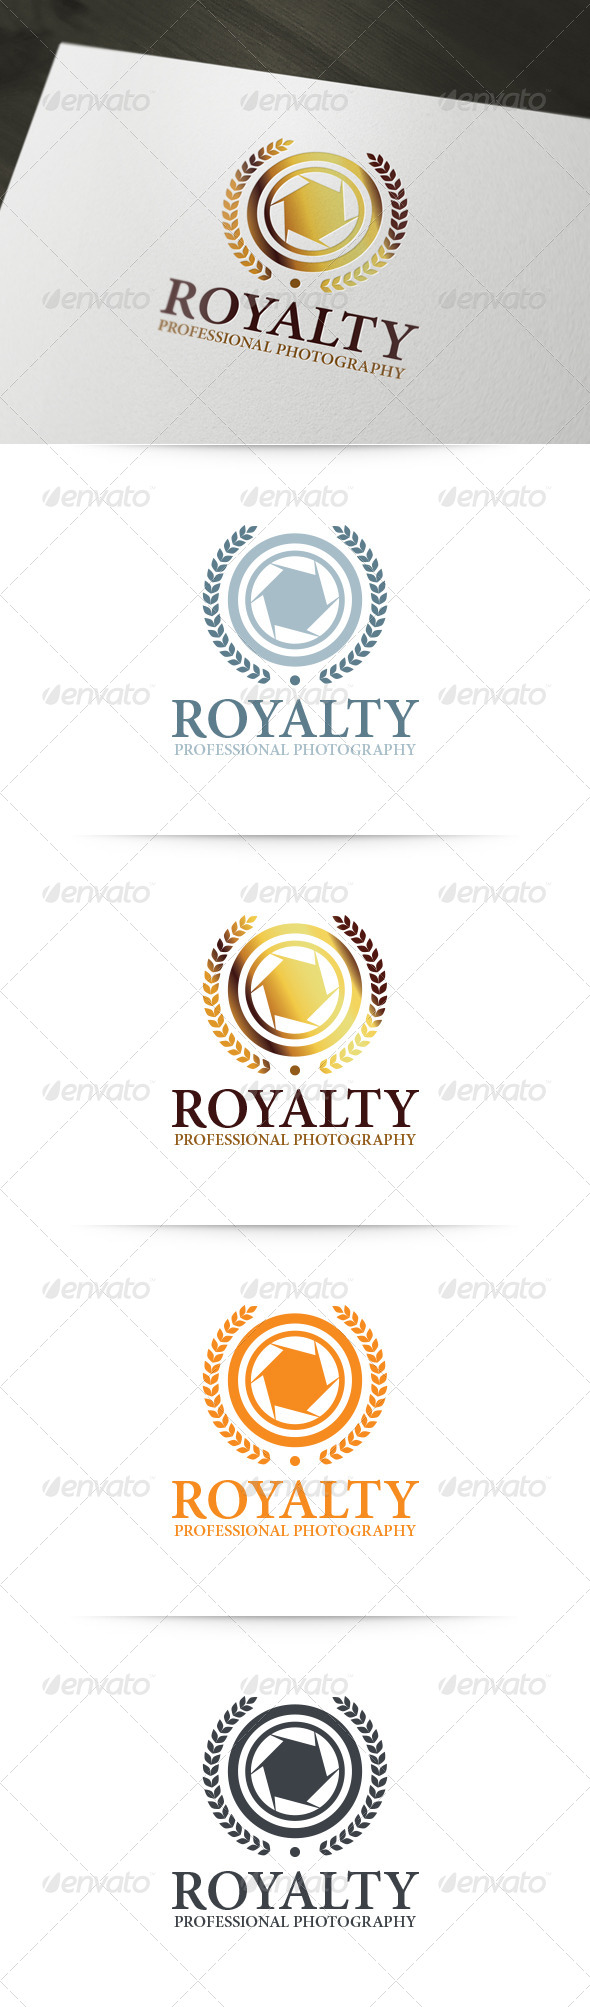 GraphicRiver Royalty Photography Logo 6198032